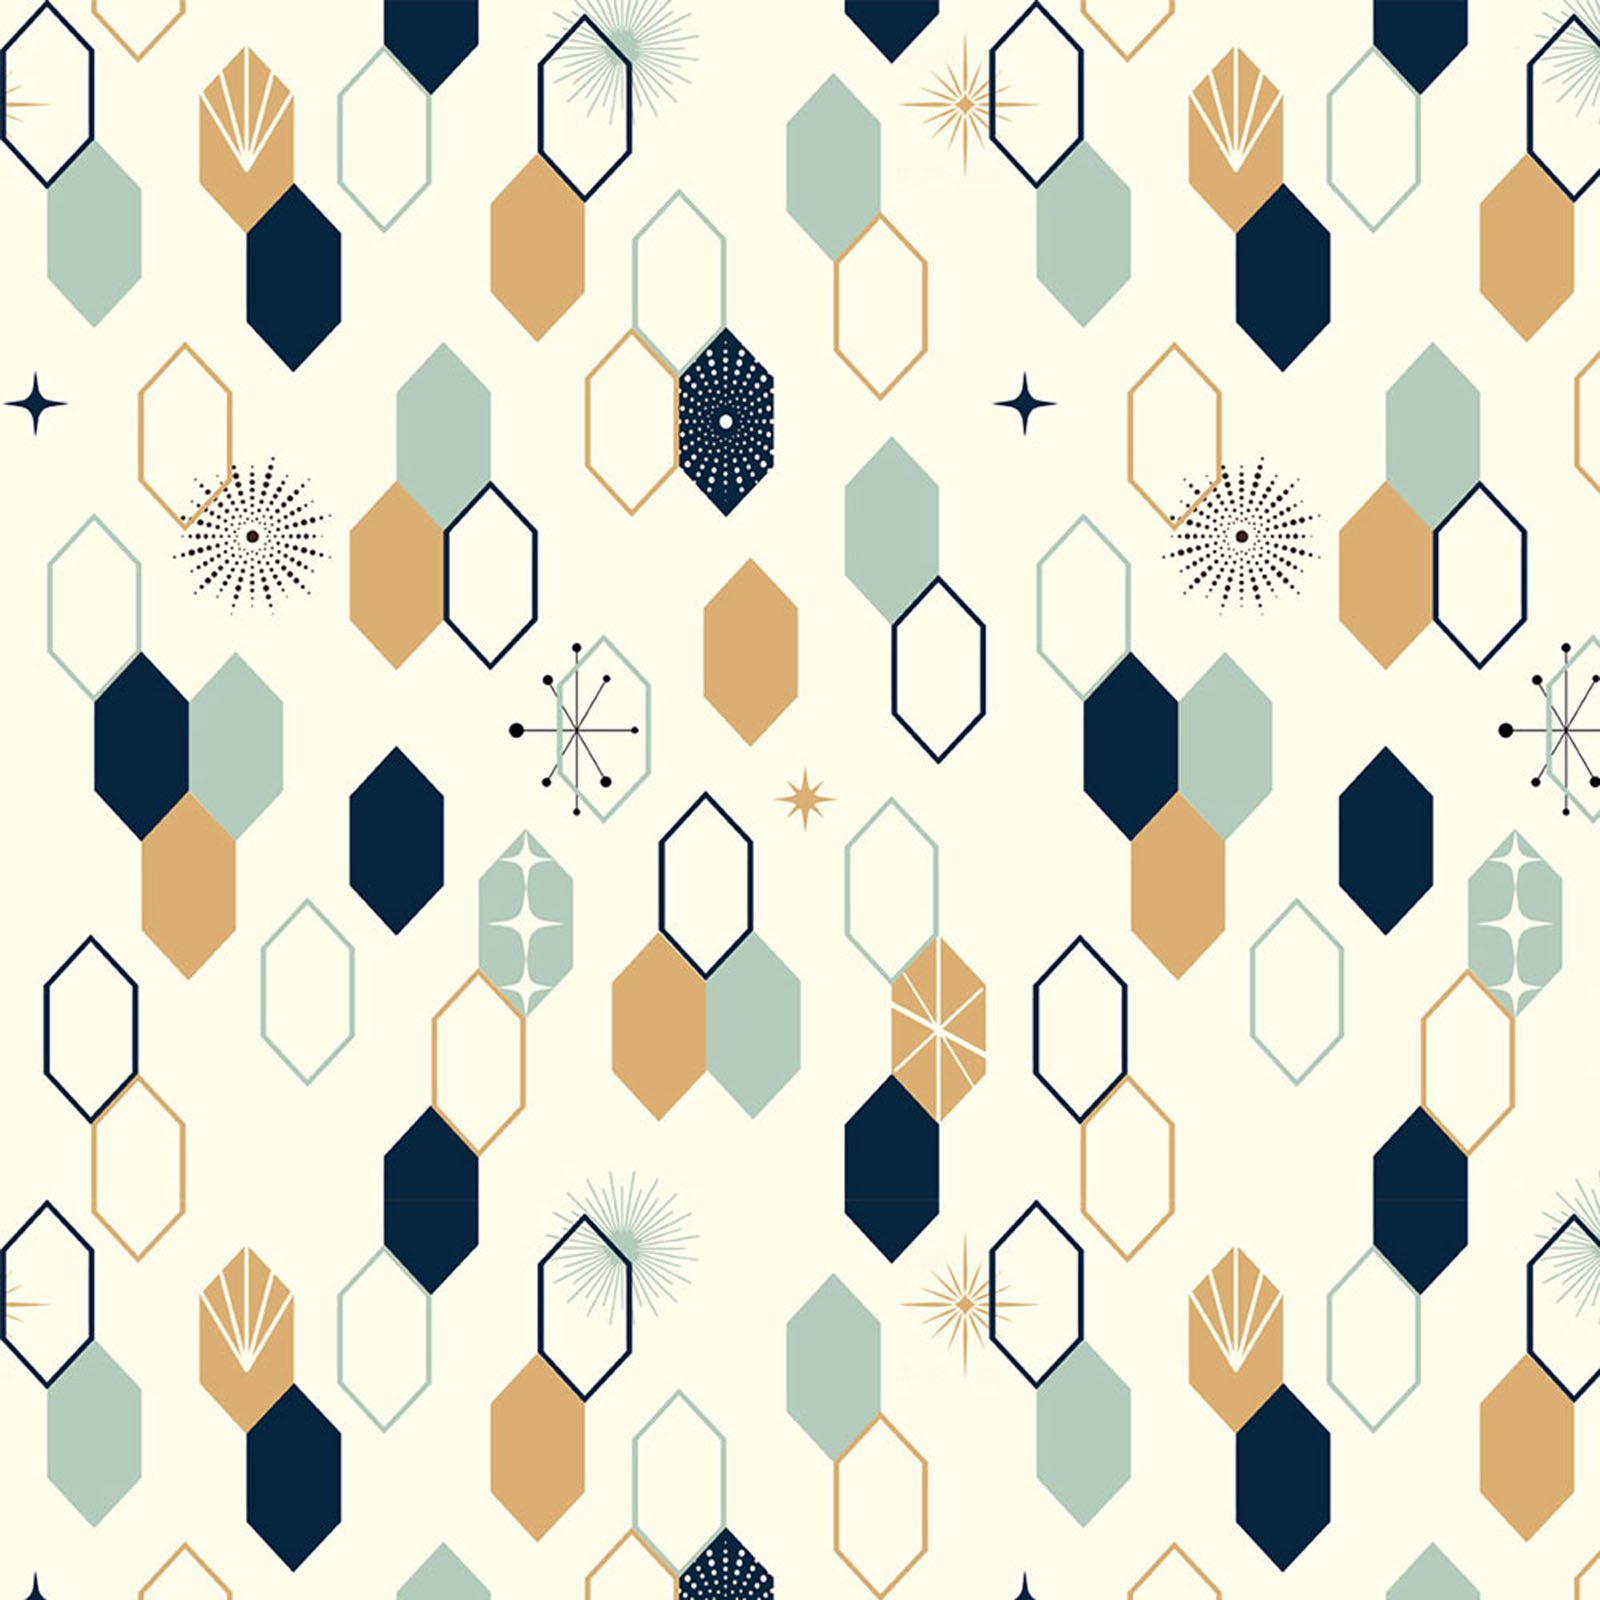 Mod Nouveau- Oblong Hex- Mint- Jay-Cyn- Birch Fabrics- Organic Cotton